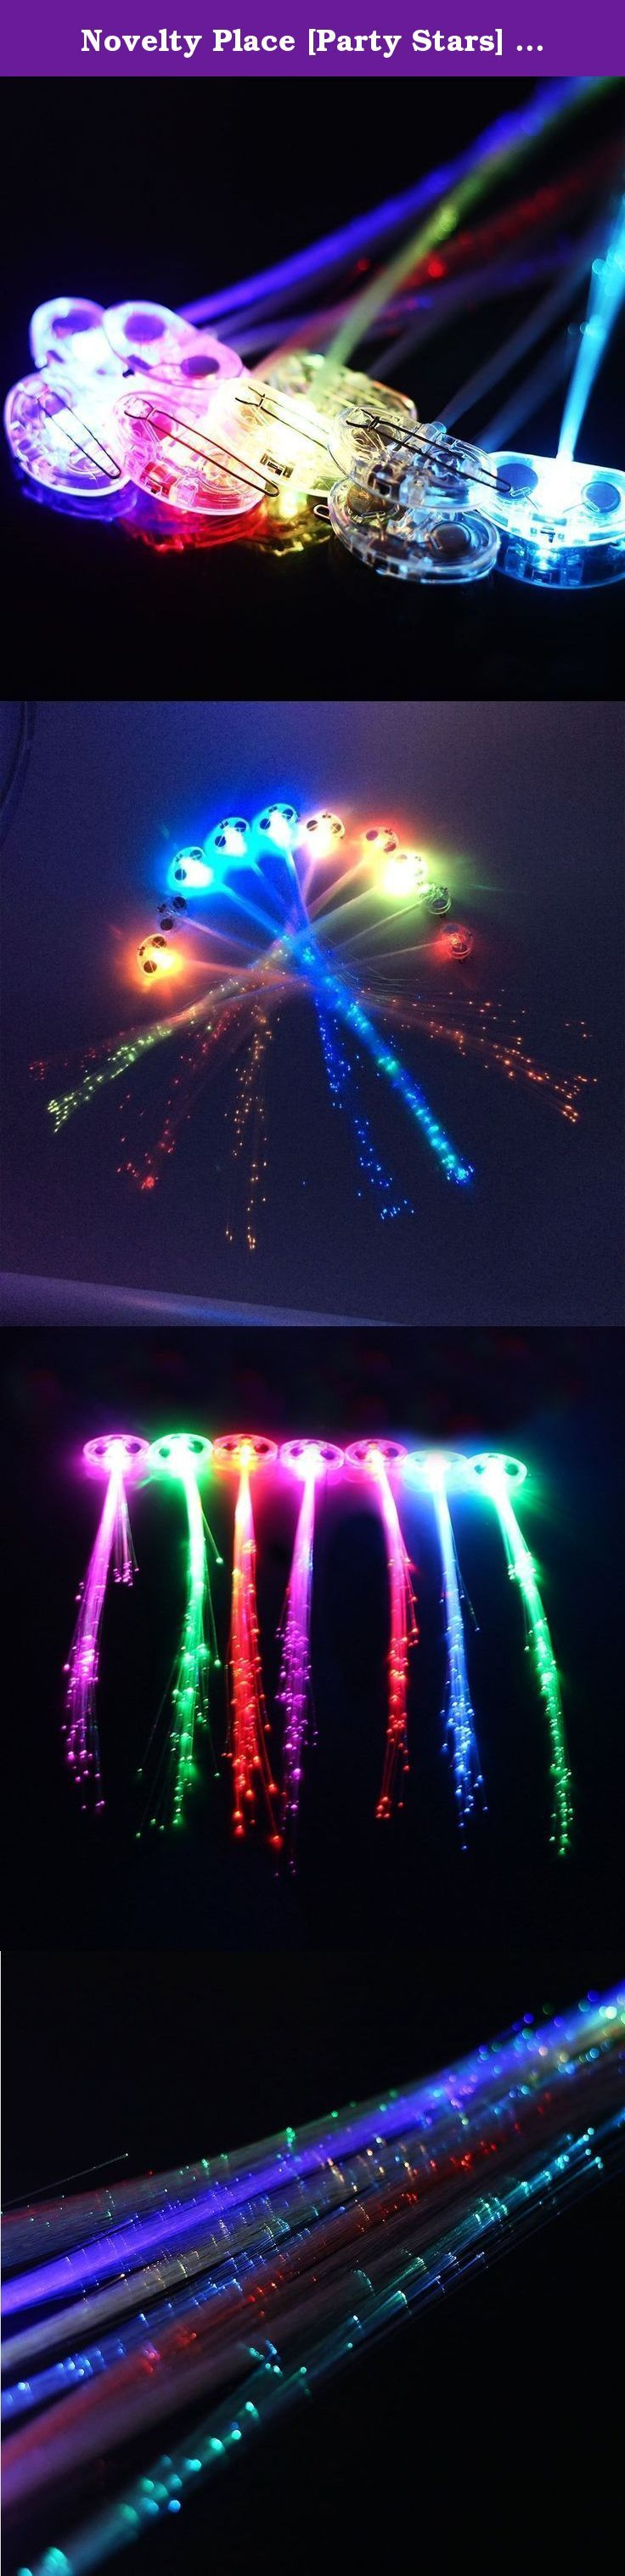 Novelty Place [Party Stars] 14 inch LED Light-Up Optic Fiber Hair Extension with Barrette Party Light Set - Alternating Multicolors (6 Pack). Premium Quality Are you tired of buying hundreds of cheap LED hair extensions and 50% of them do not work? Well, We can save you! We don't use paper thin plastic and cheap batteries like other companies do. Our light-up hair extensions are bigger, more durable and better ressambled. Our batteries last 20% stronger than competitors'. Try us and you...